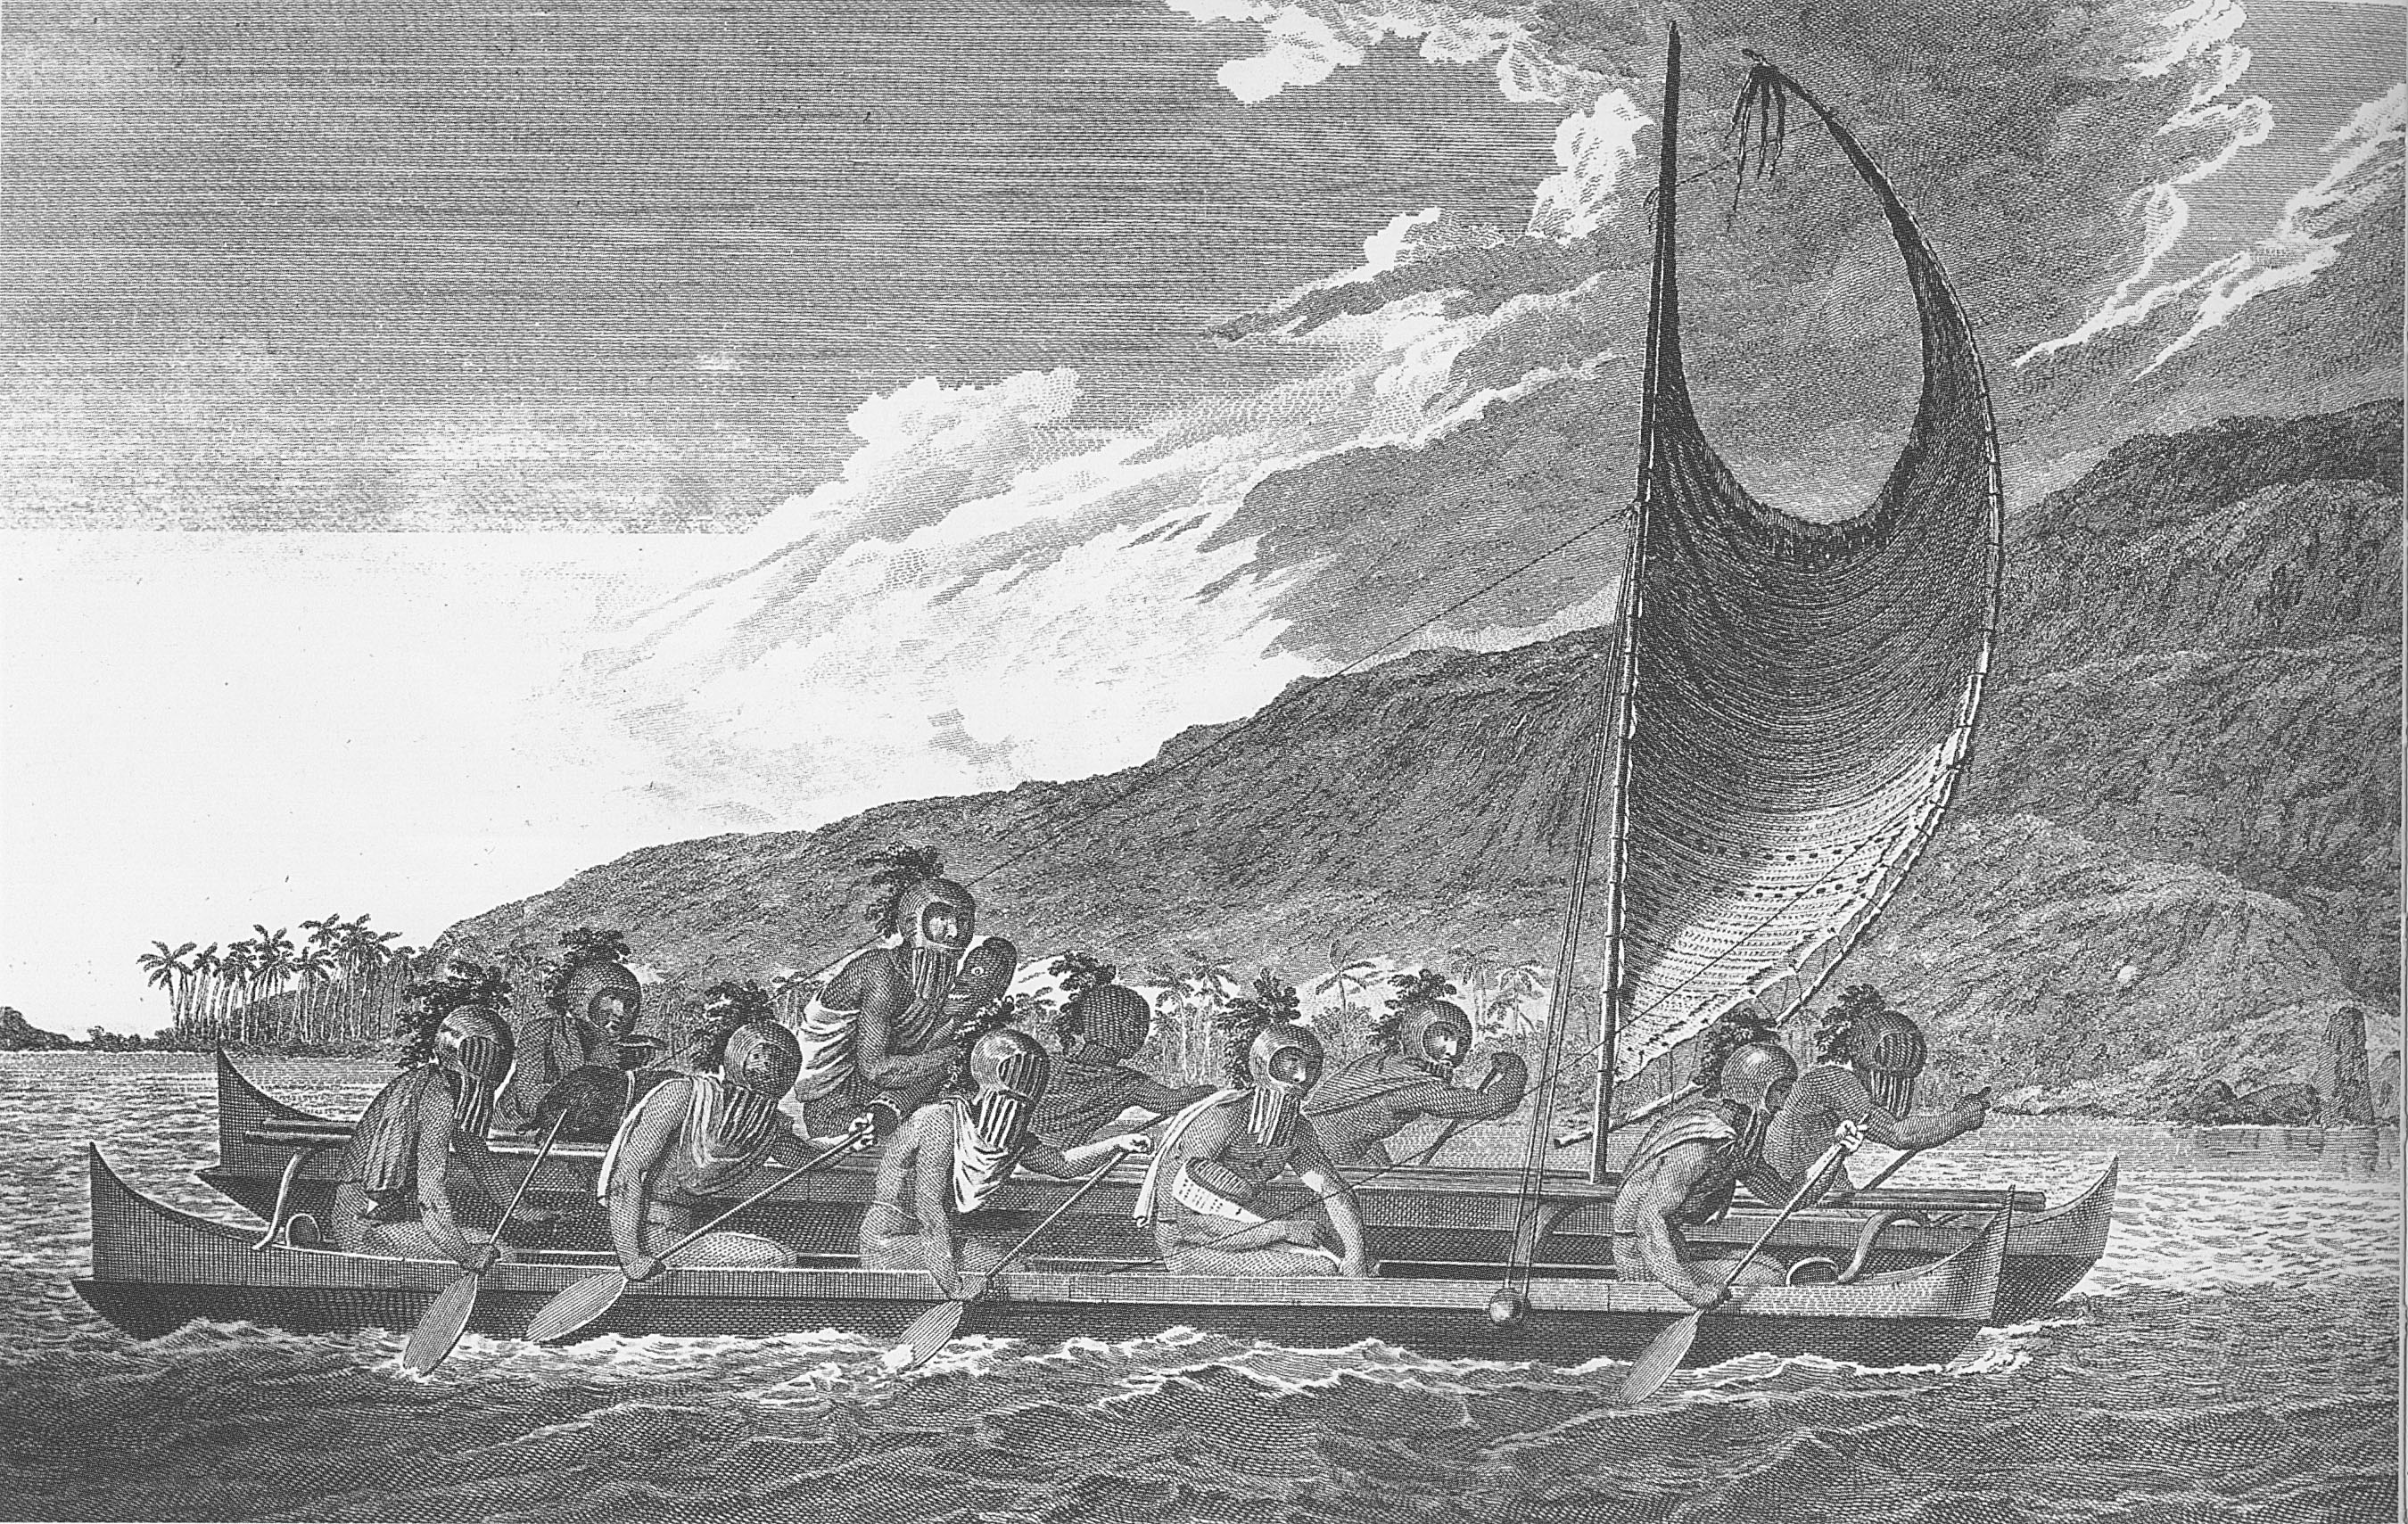 https://upload.wikimedia.org/wikipedia/commons/3/3e/Priests_traveling_across_kealakekua_bay_for_first_contact_rituals.jpg